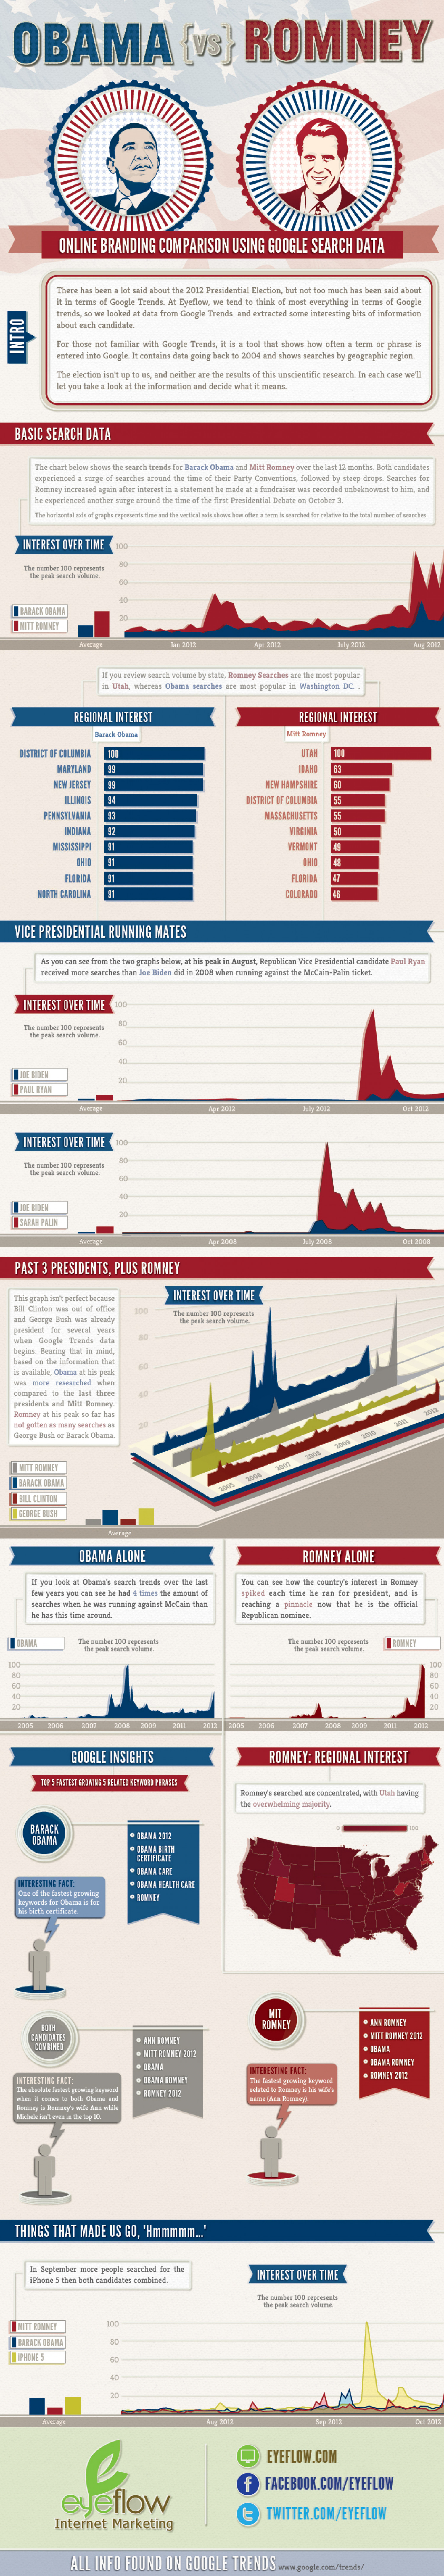 Obama vs. Romney Using Google Trends Infographic